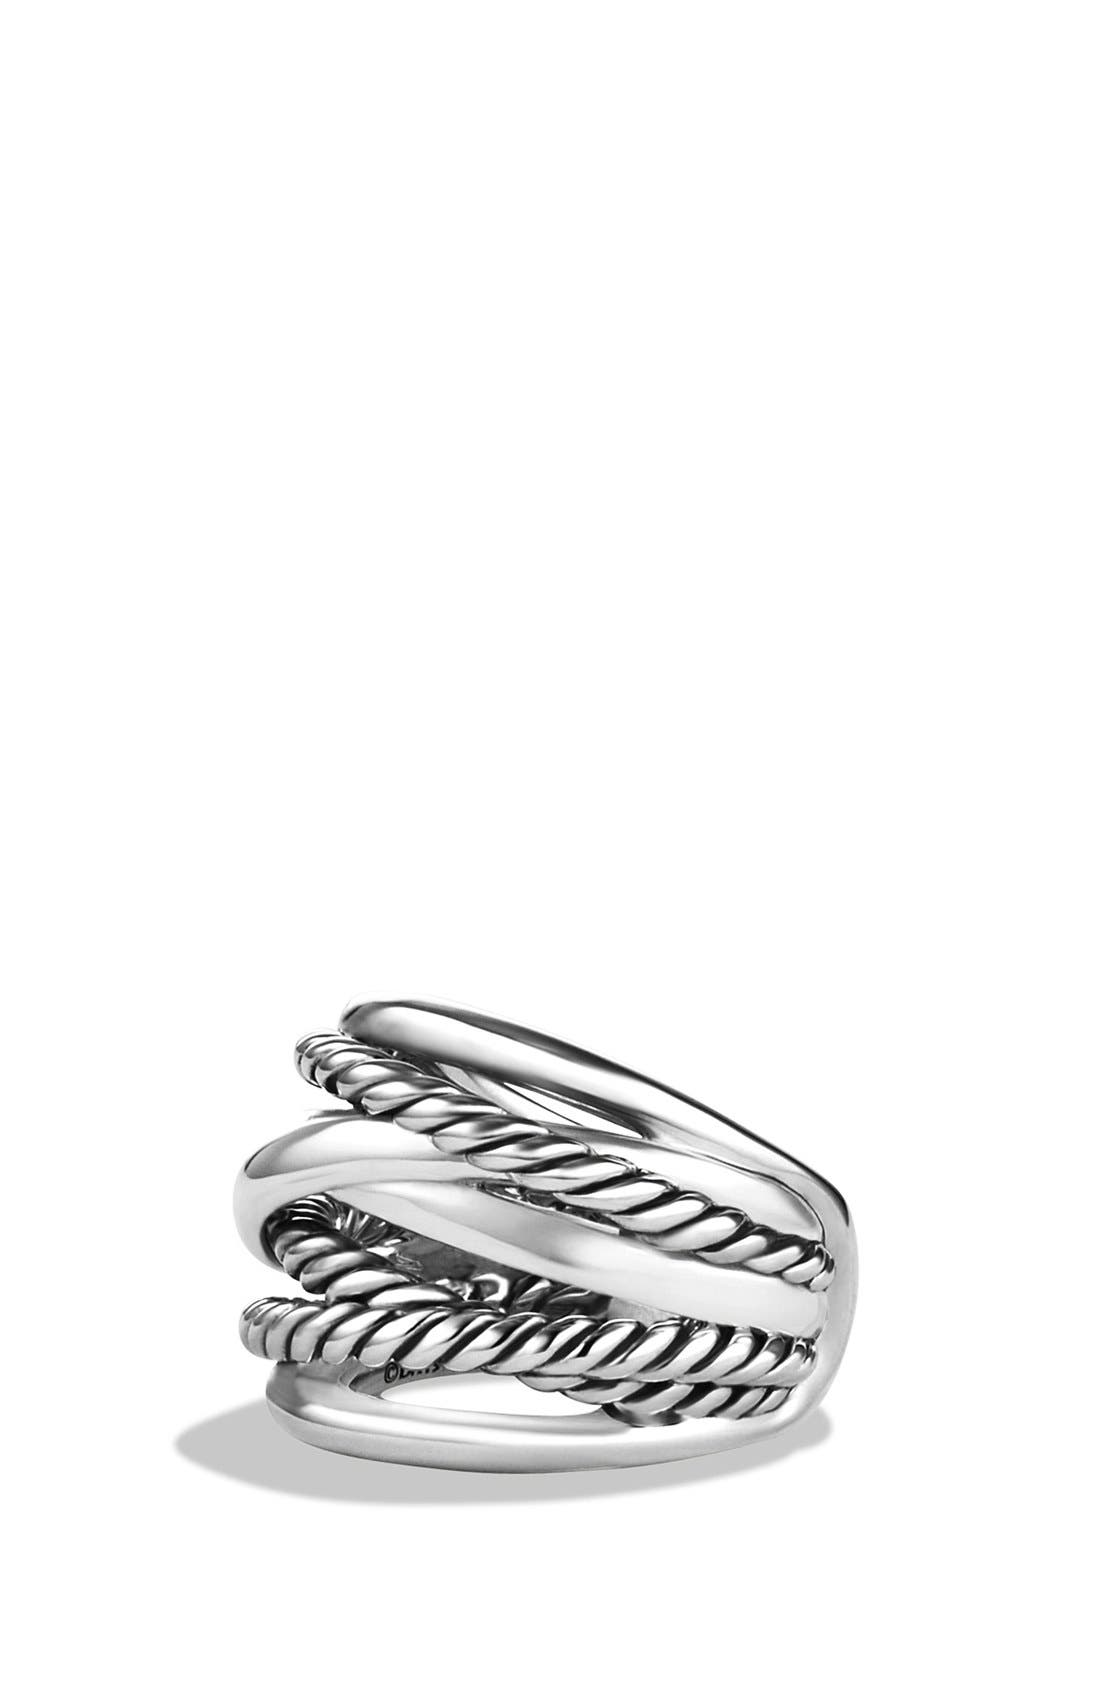 Alternate Image 1 Selected - David Yurman 'Crossover' Wide Ring